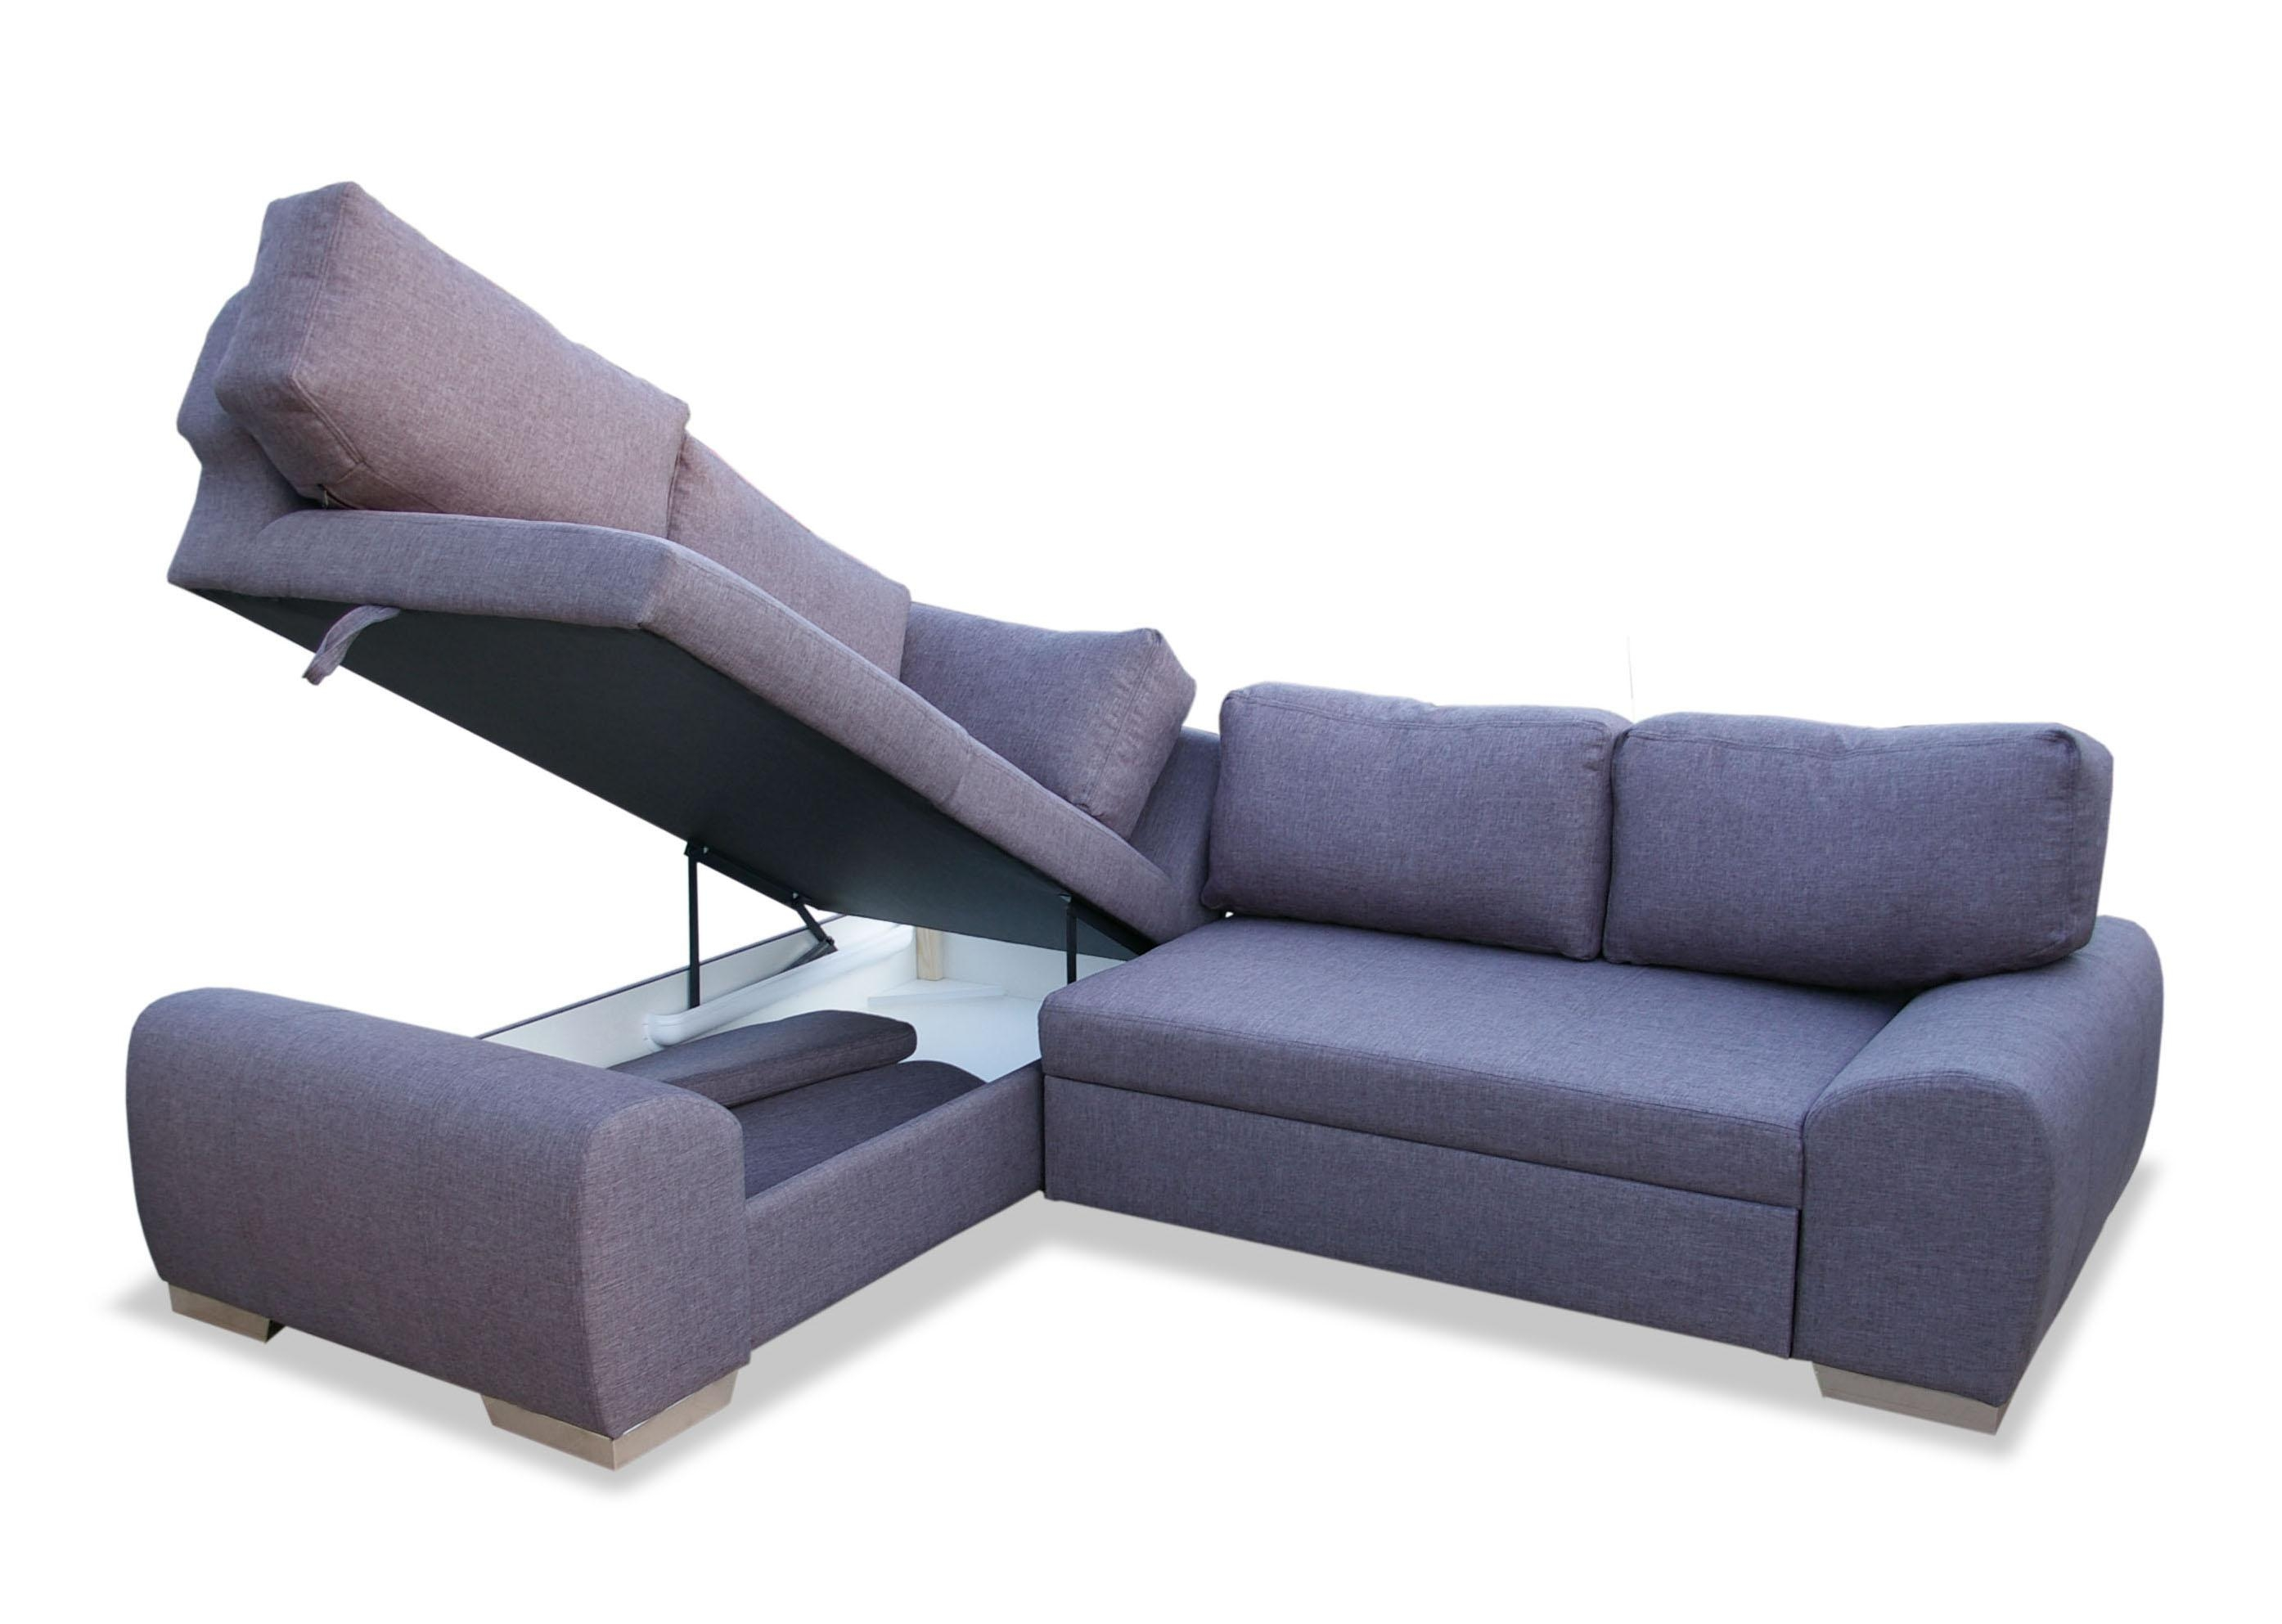 Sofas : Fabulous Sofa Beds With Storage Compartment Double Loft For Storage Sofa Beds (View 10 of 20)